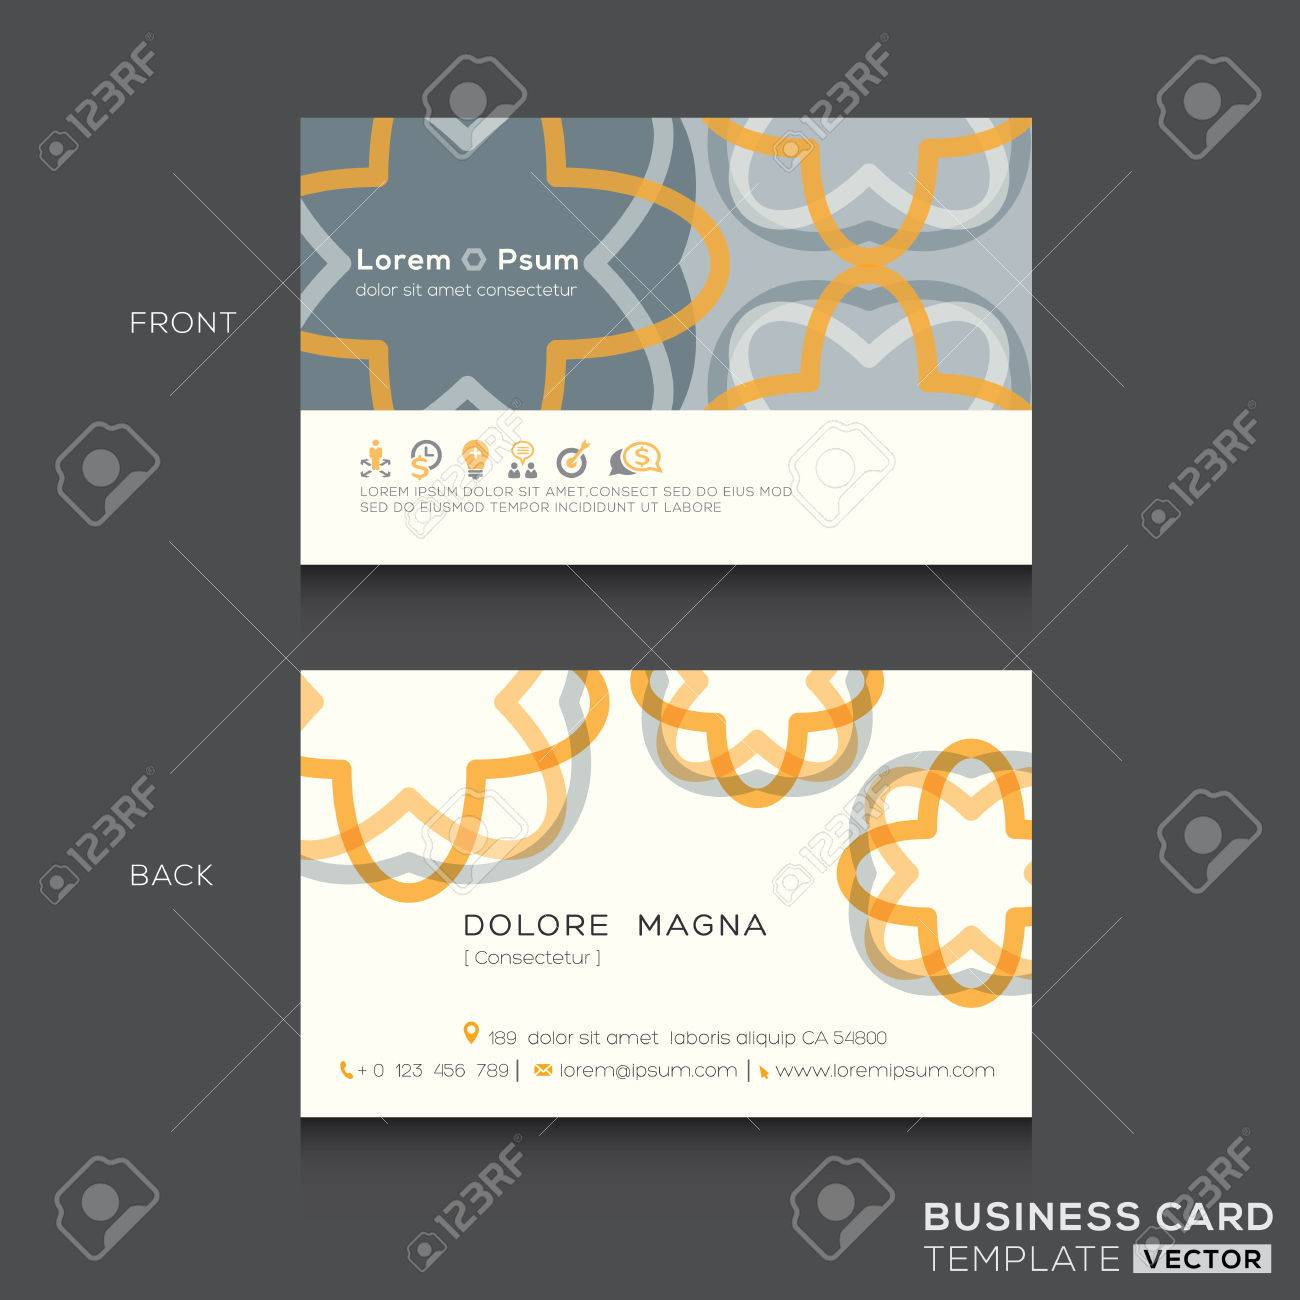 Retro business cards design template royalty free cliparts vectors retro business cards design template stock vector 41024881 wajeb Choice Image